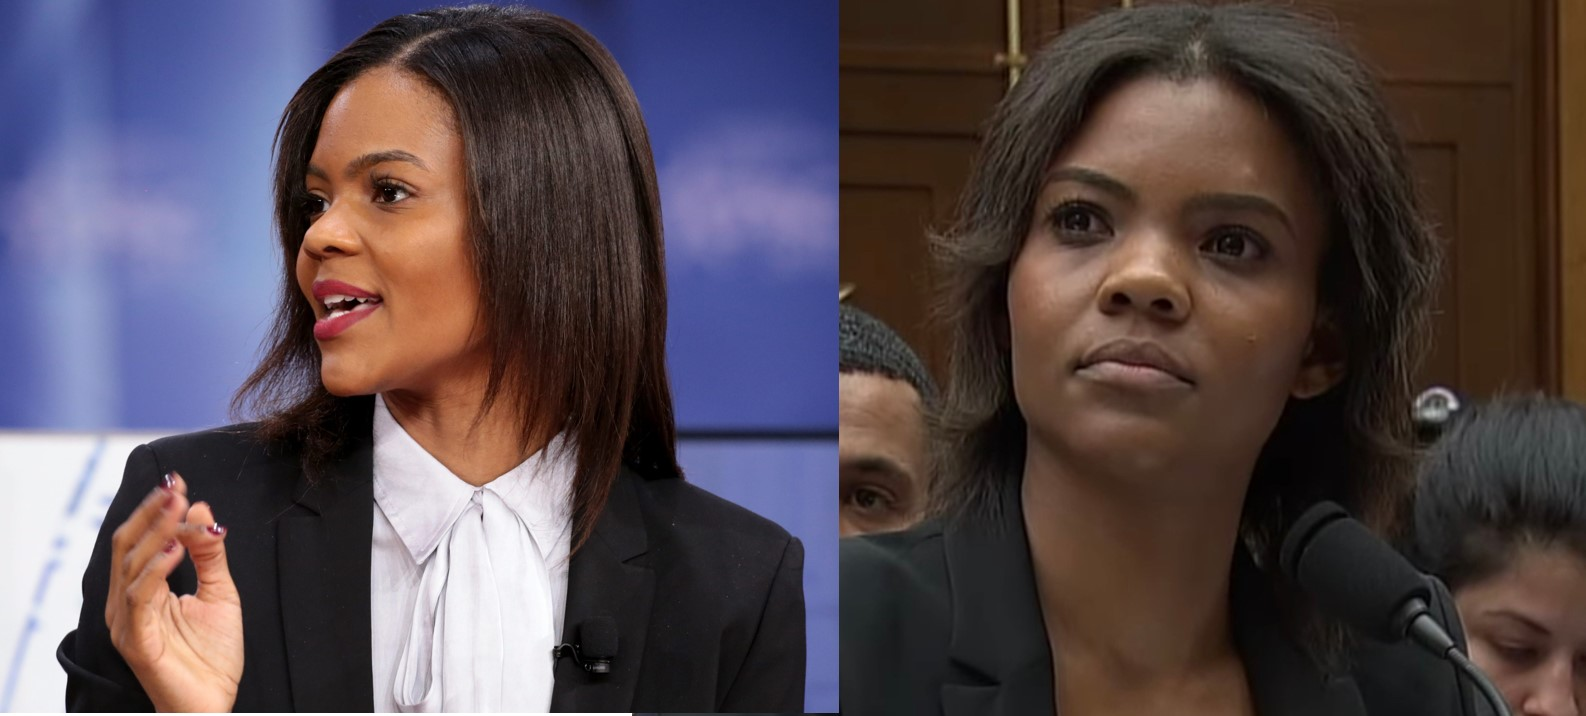 'Feminism is a scam, it is tearing women down' – US activist, Candace Owen says (Video)